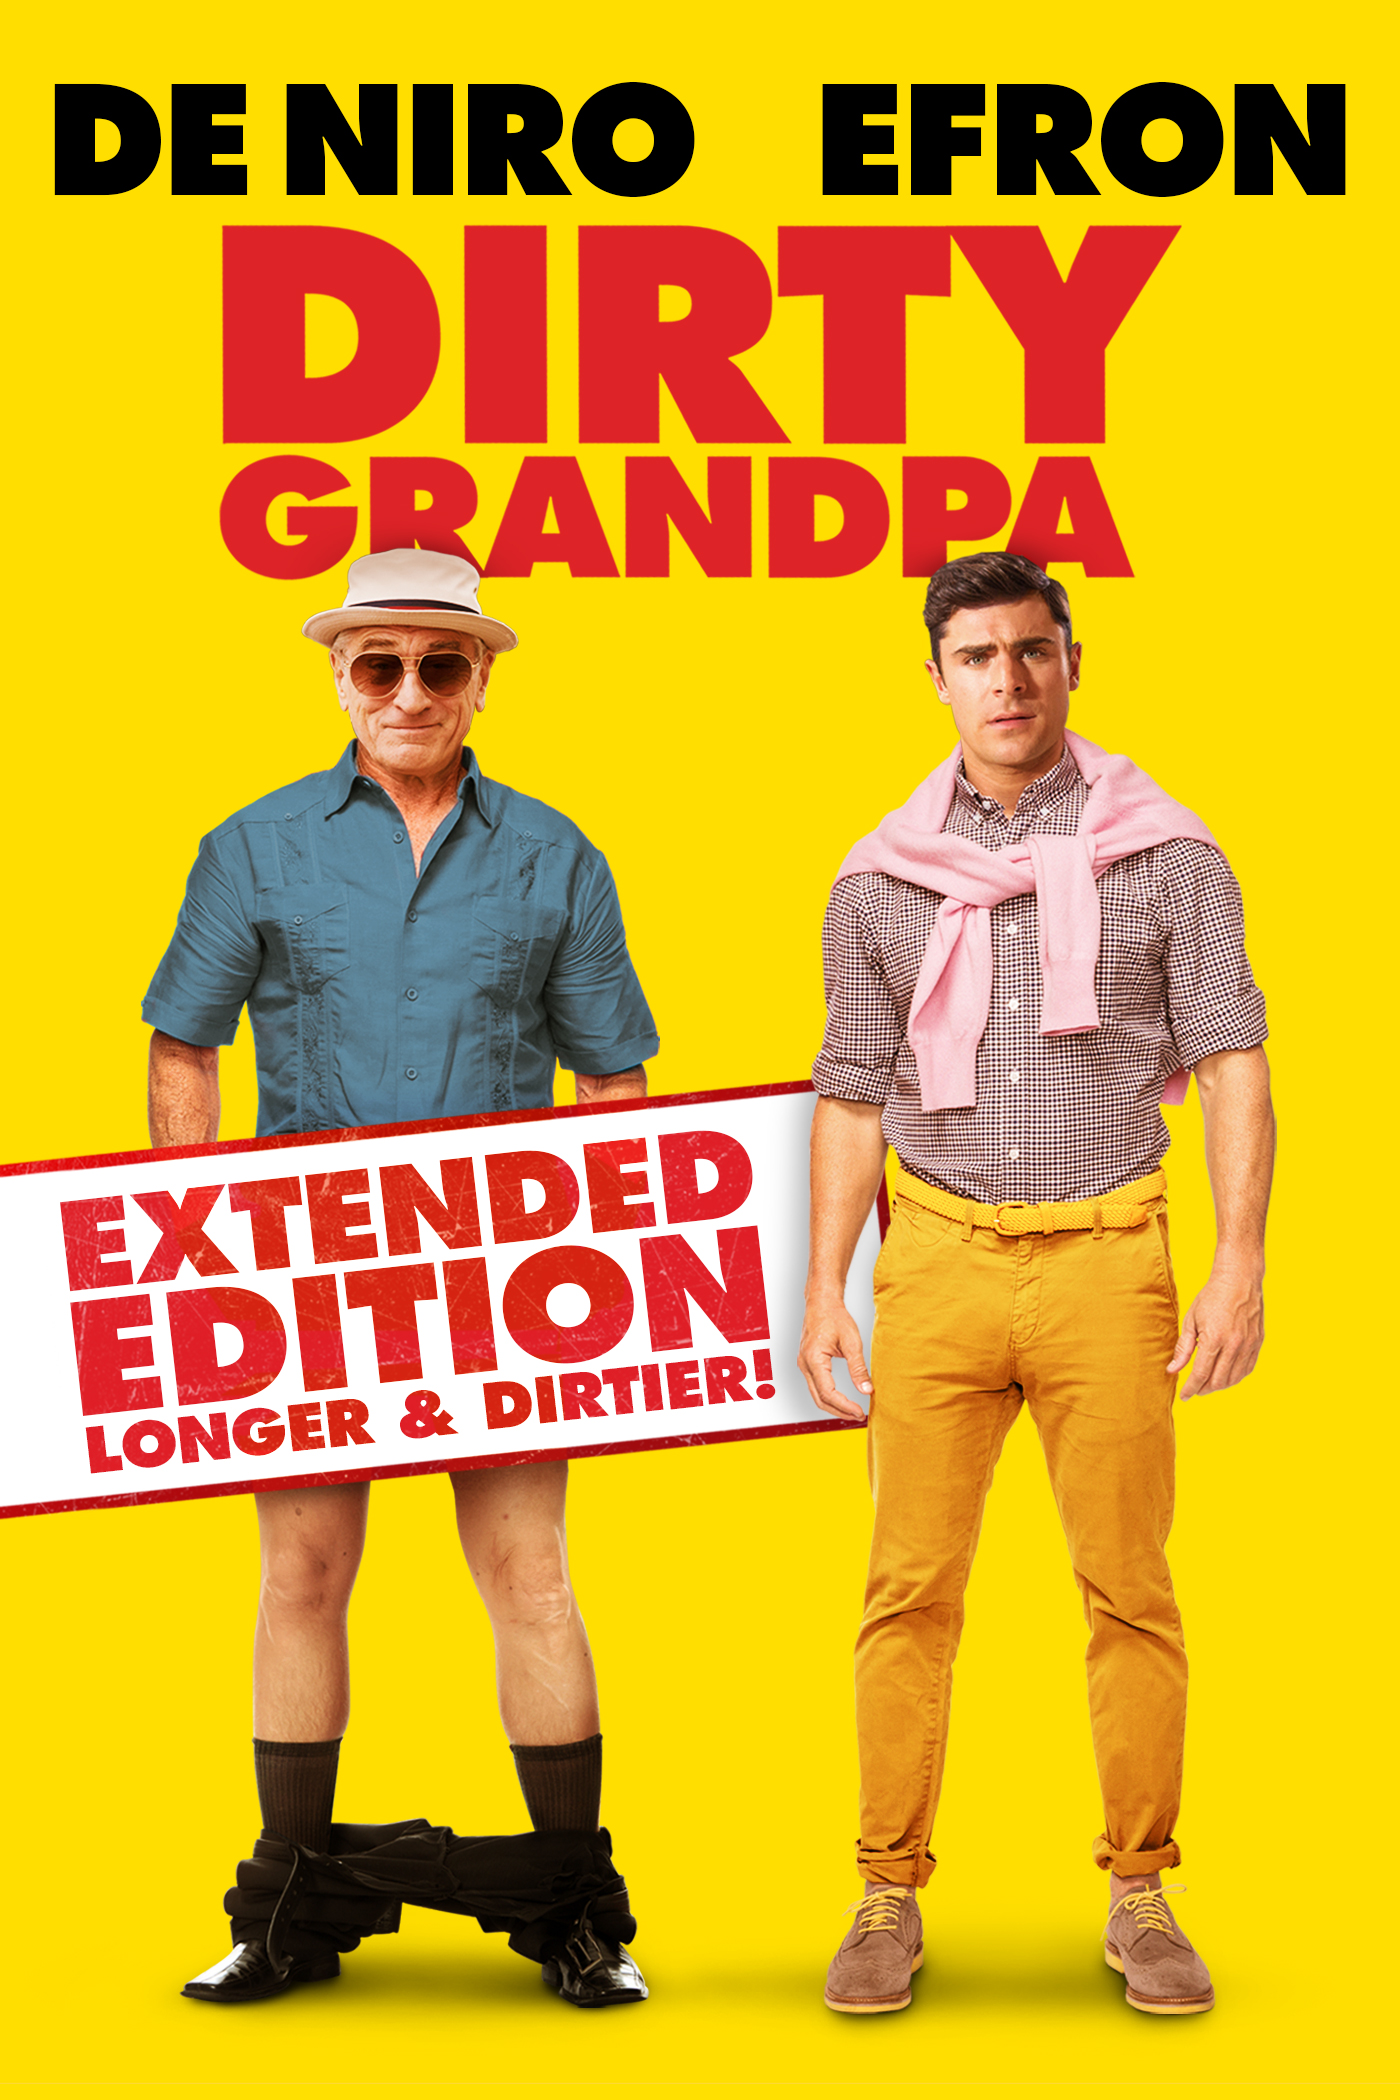 Dirty Grandpa: Extended Edition, Longer and Dirtier